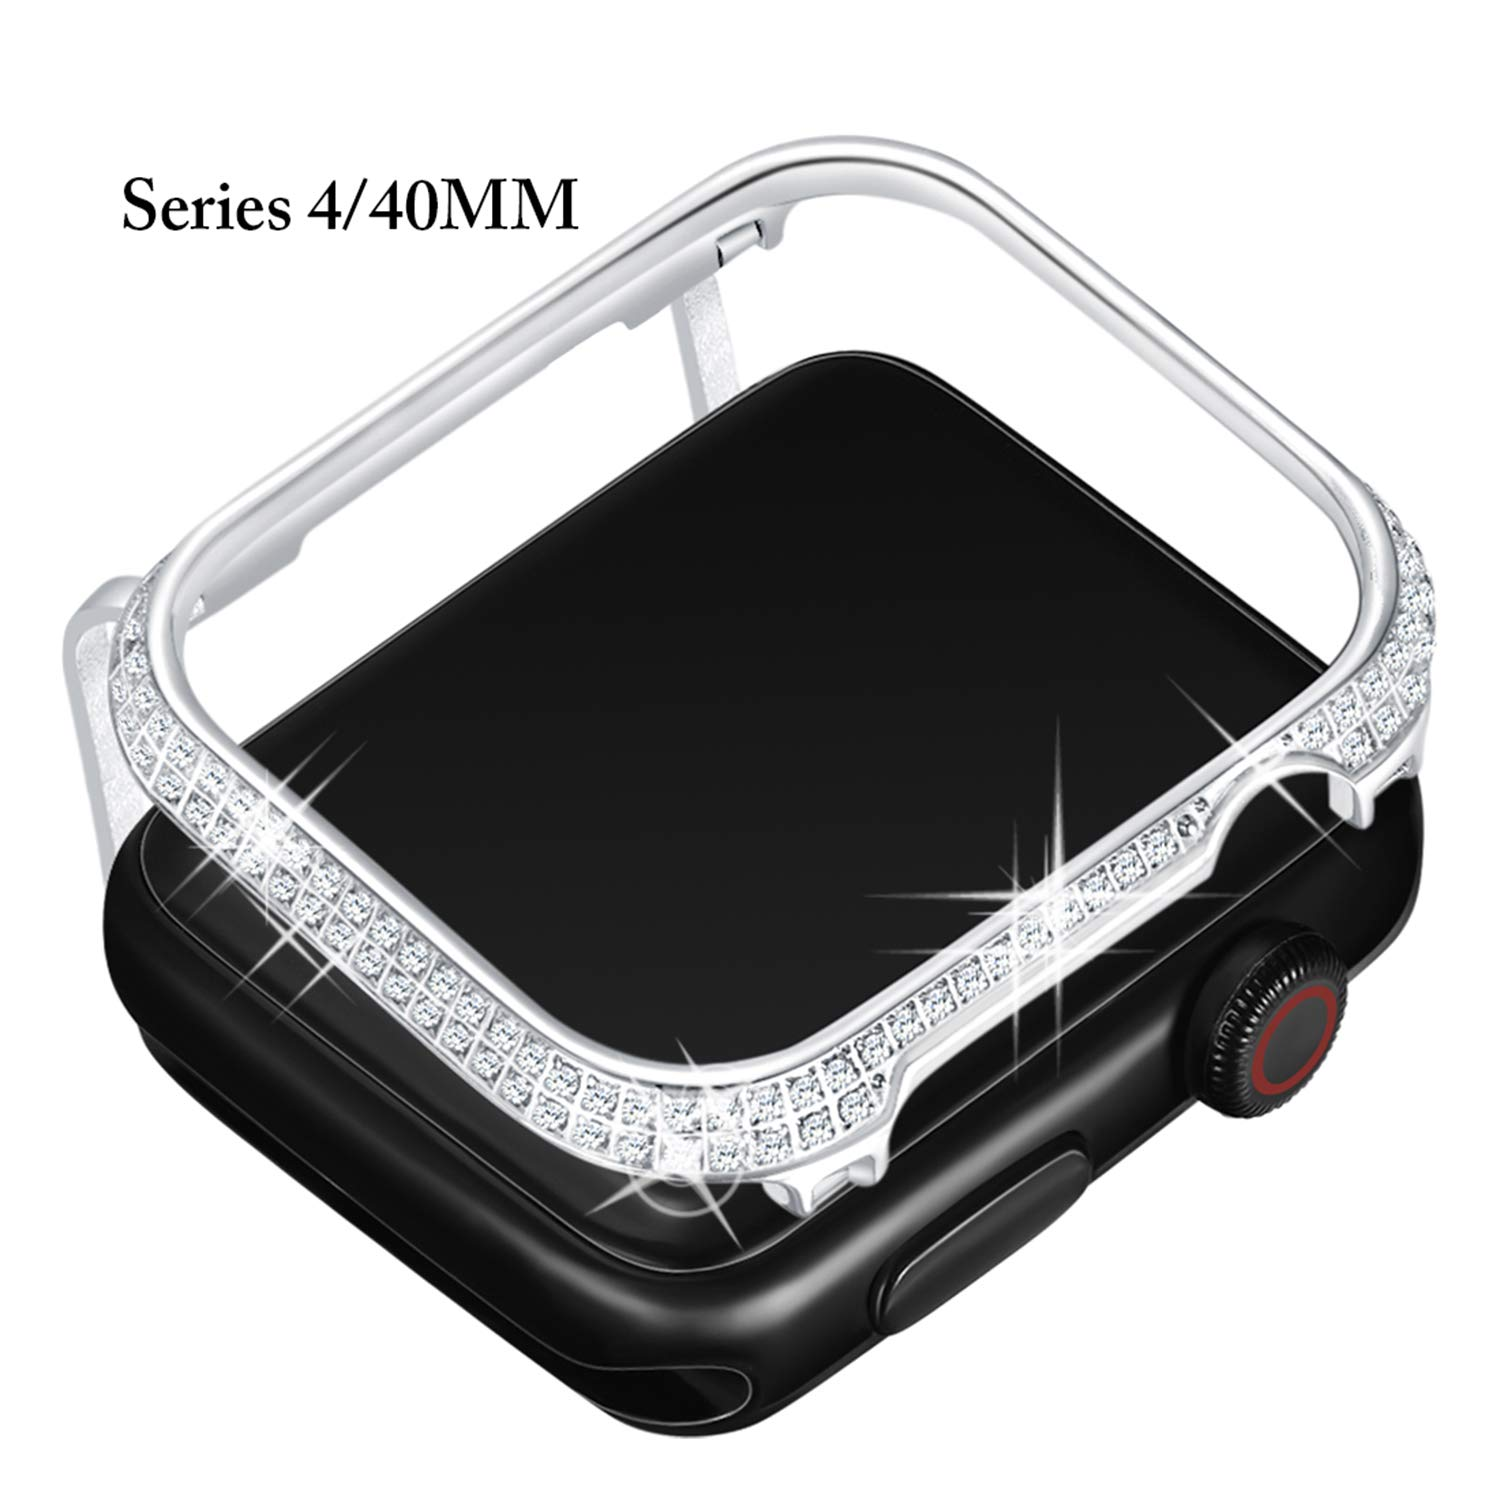 Callancity 40mm Metal Face Cover Plated Platinum Rhinestone White Crystal Diamond Protective Frame Compatible with Apple Watch Series 4 for Men/Women (40MM Platinum)